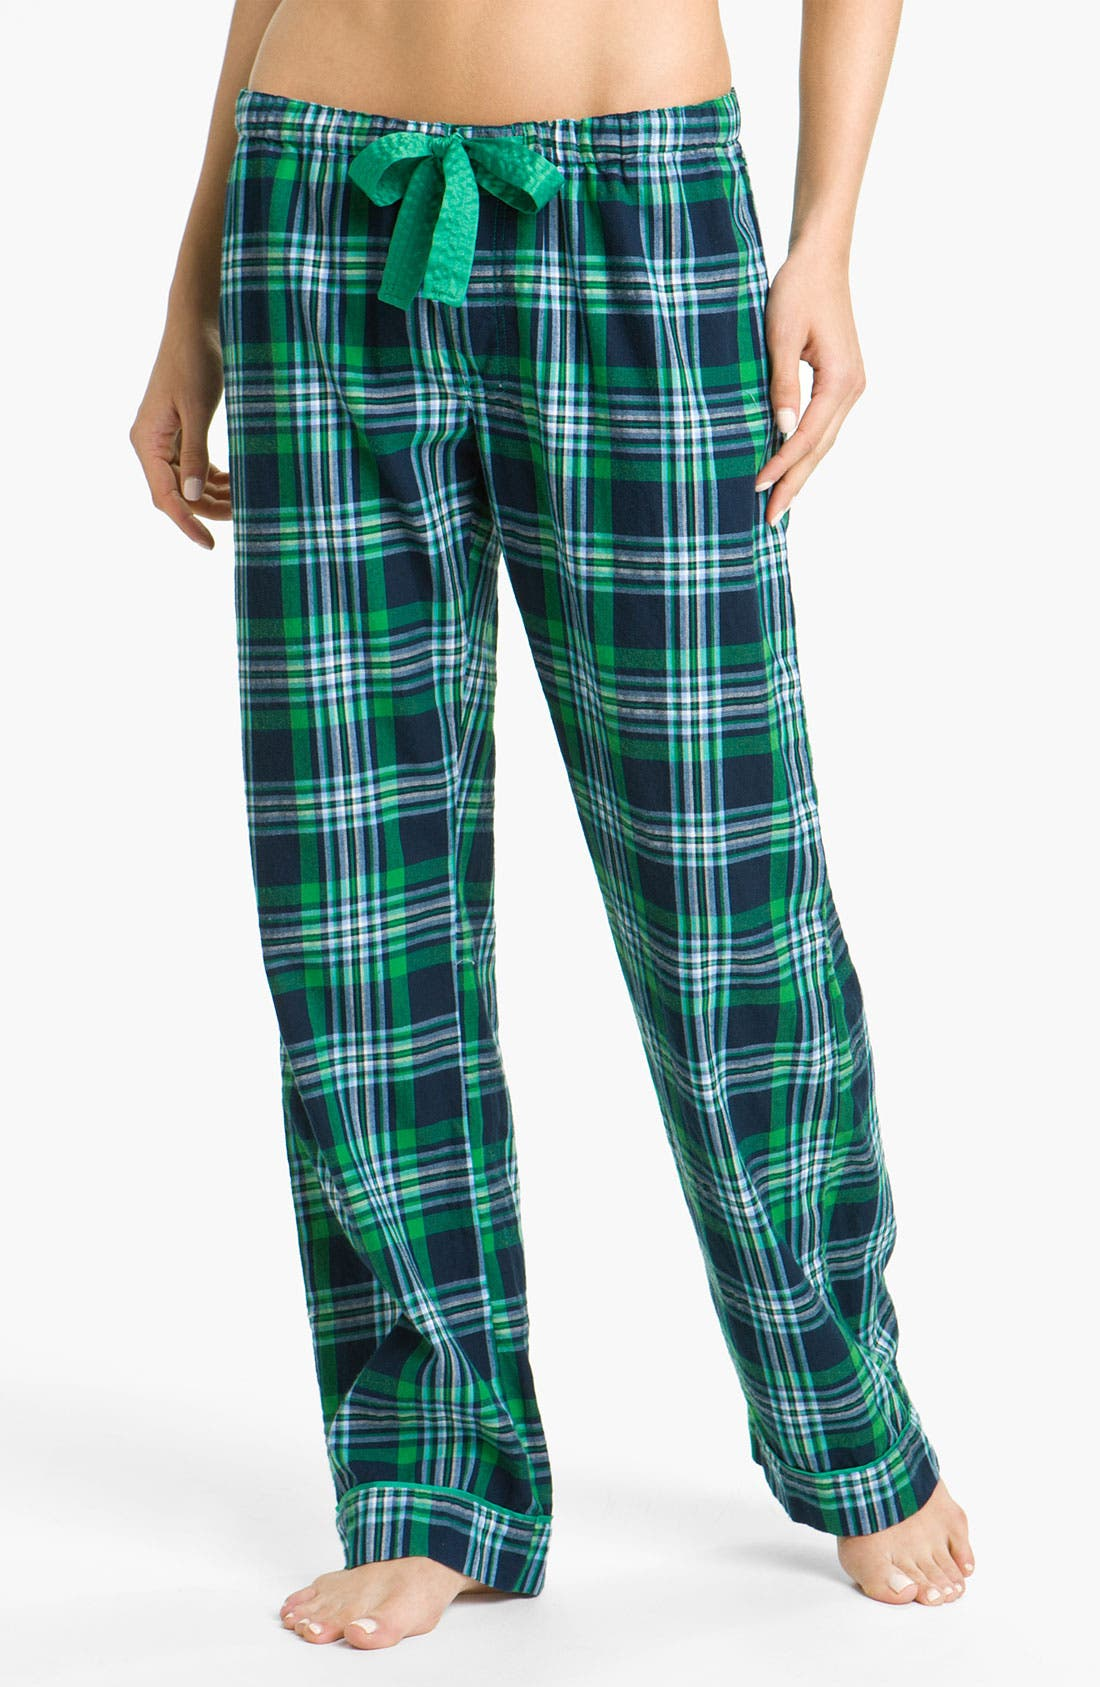 Alternate Image 1 Selected - PJ Salvage 'Emerald City' Plaid Lounge Pants